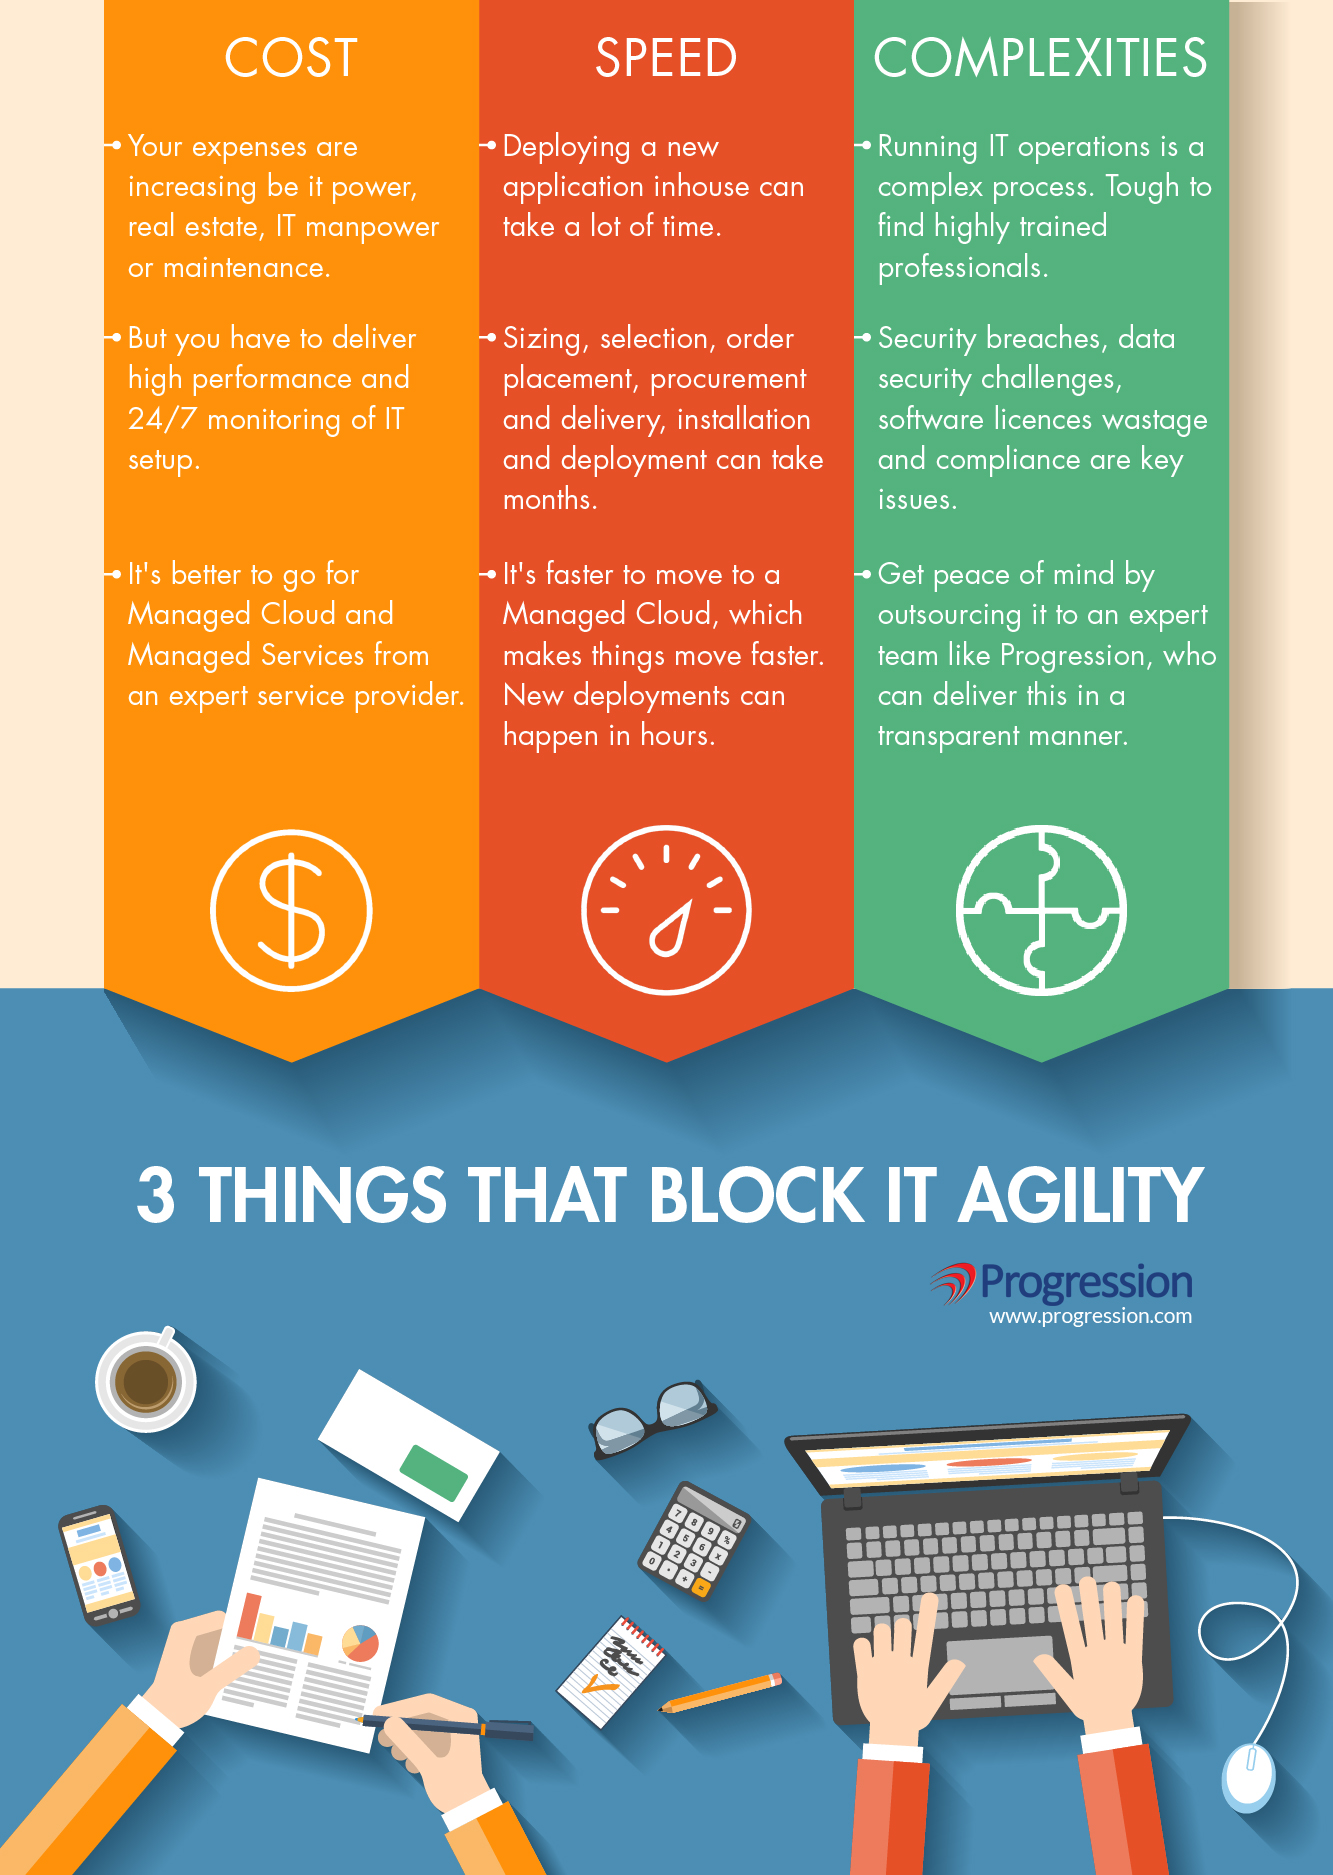 3 Things that Block IT Agility